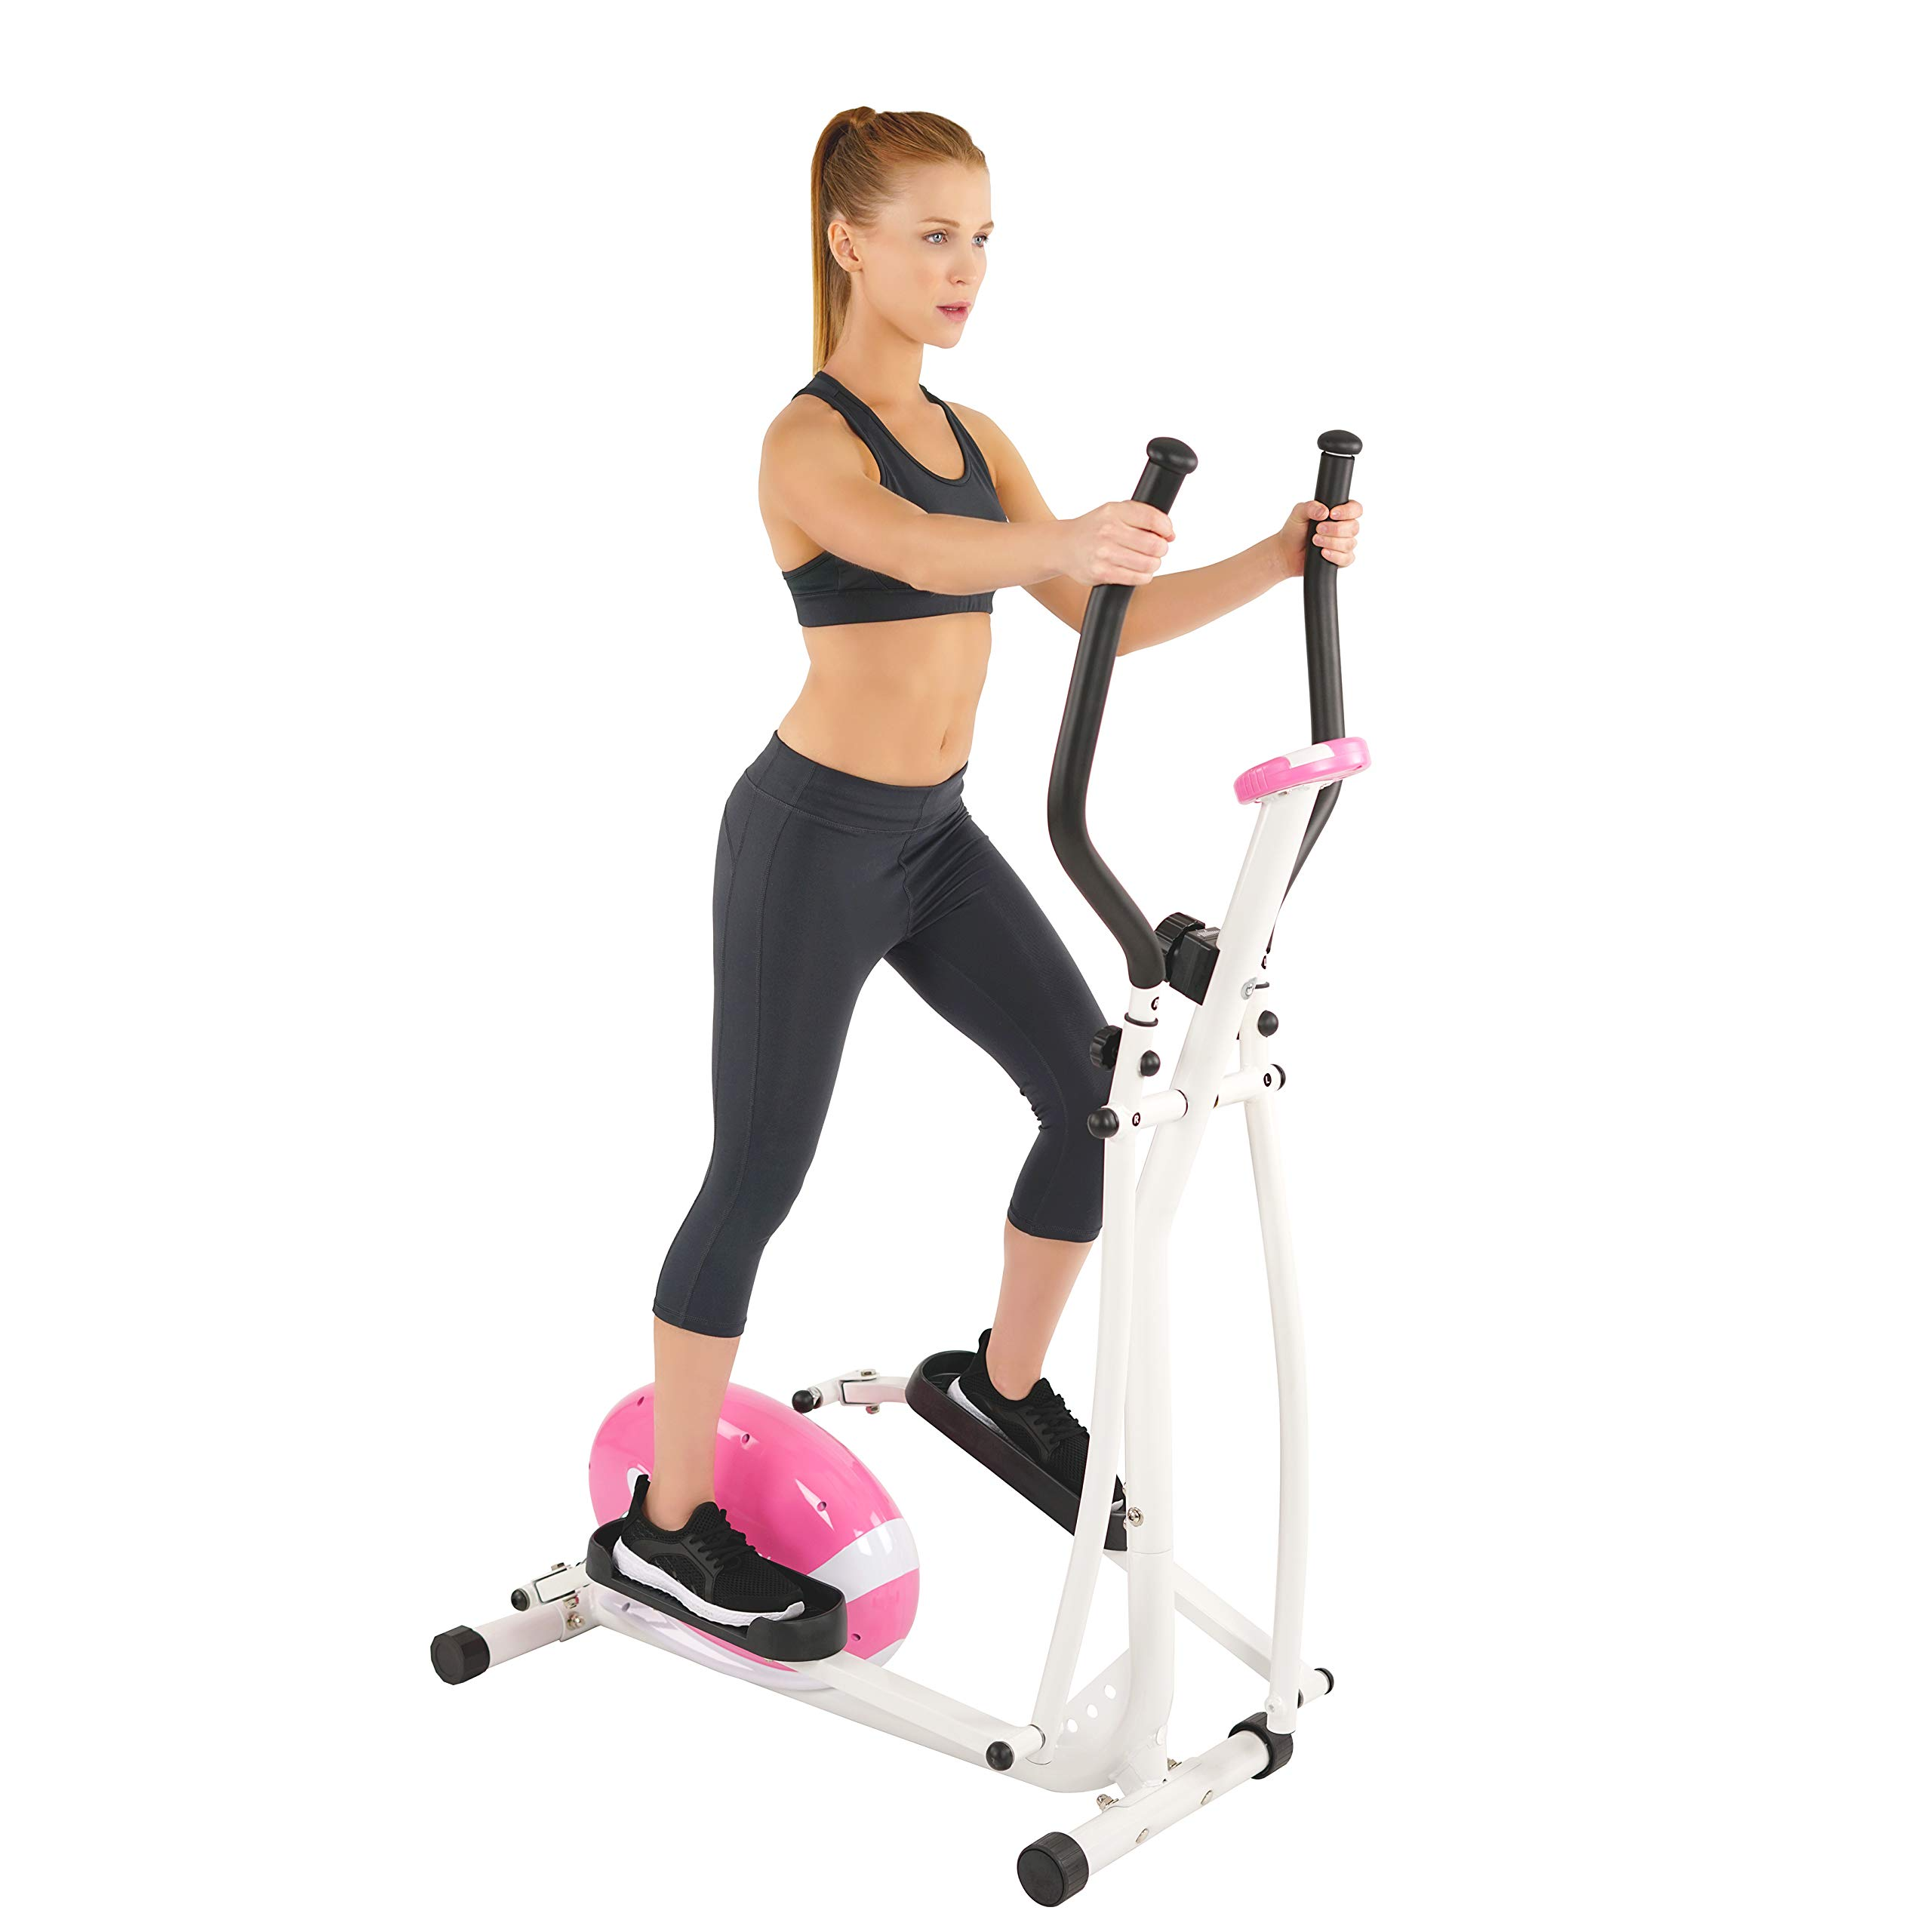 Sunny Health & Fitness P8300 Pink Magnetic Elliptical Trainer Elliptical Machine w/LCD Monitor